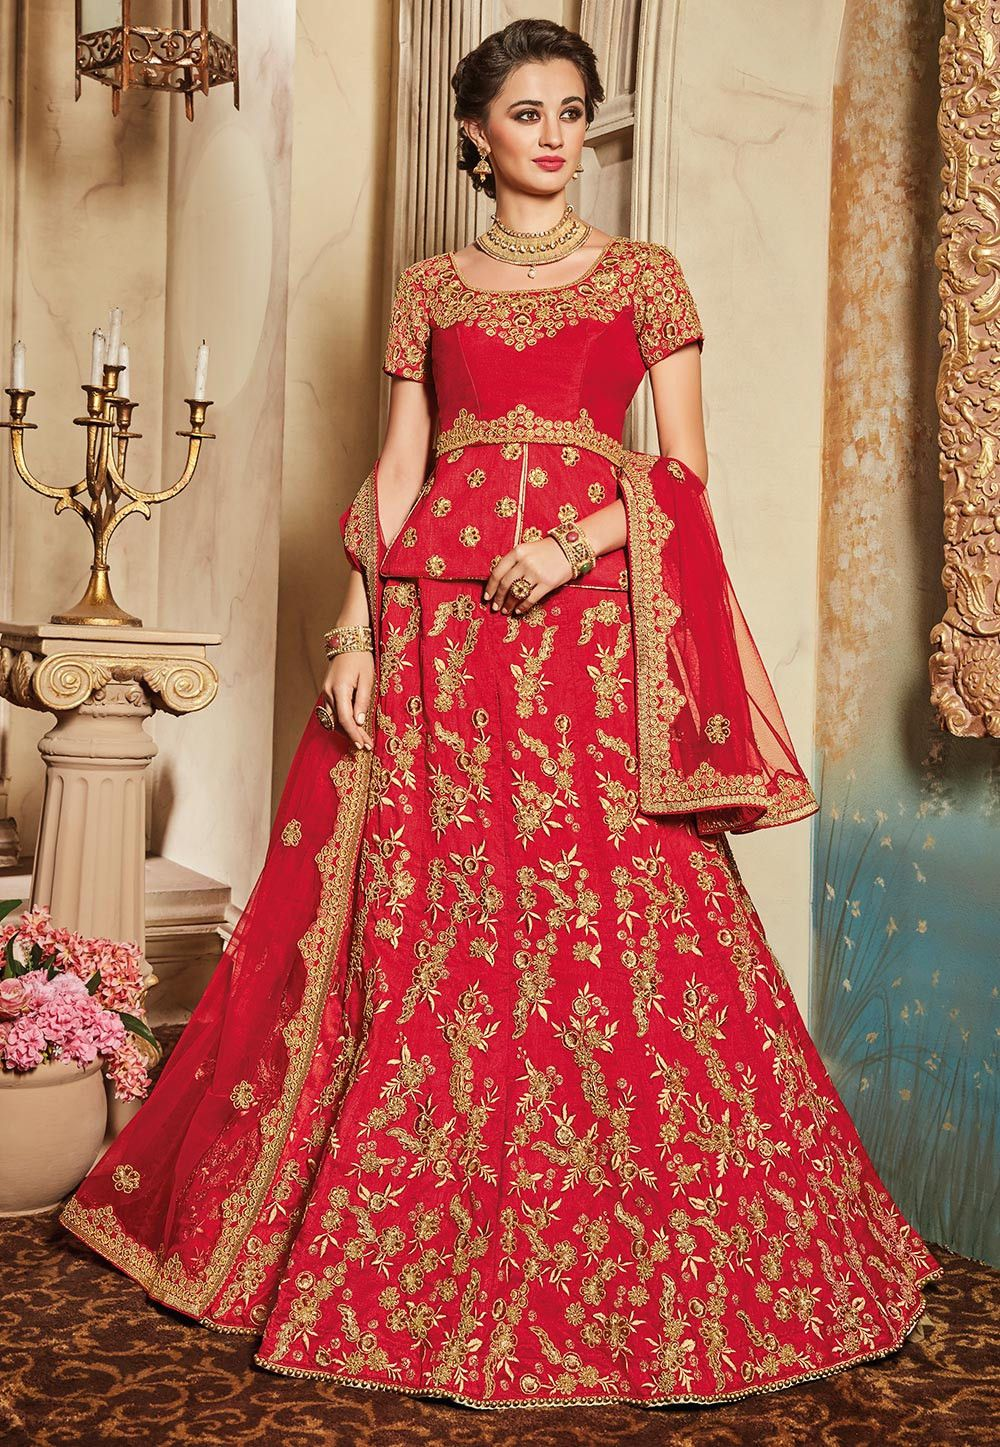 3eed3fad5f Buy online Embroidered Art Silk Circular Lehenga in Red now, Item code:  LTL86, Color: Red, Occasion: Wedding, Fabric: Art Silk, Type: Circular, ...